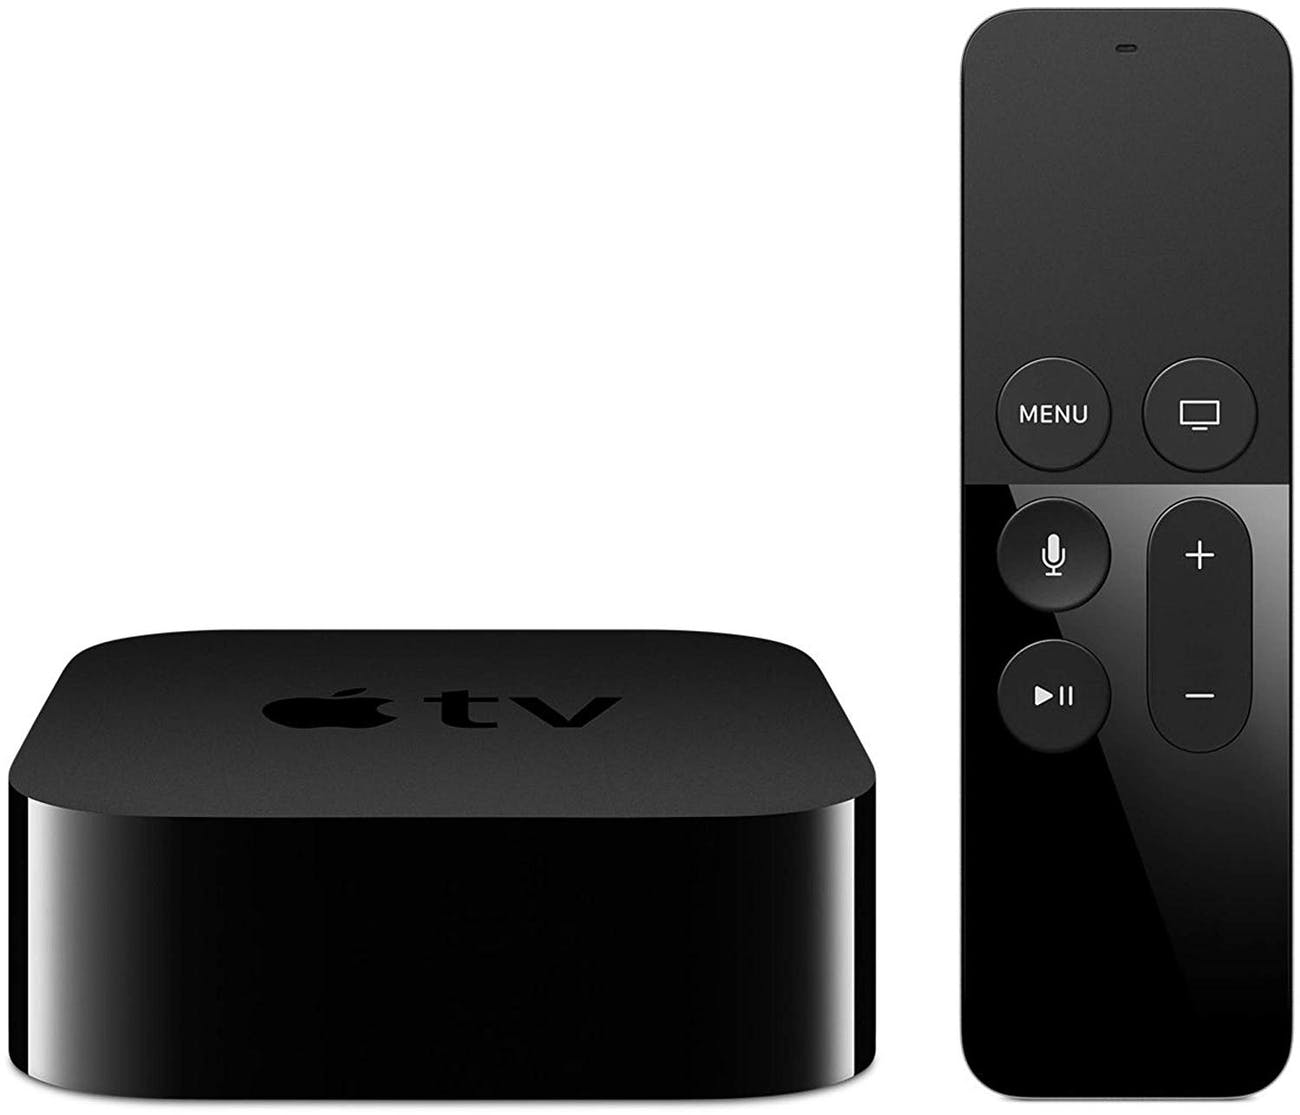 Apple TV 4K (64GB, Latest Model) media streamer